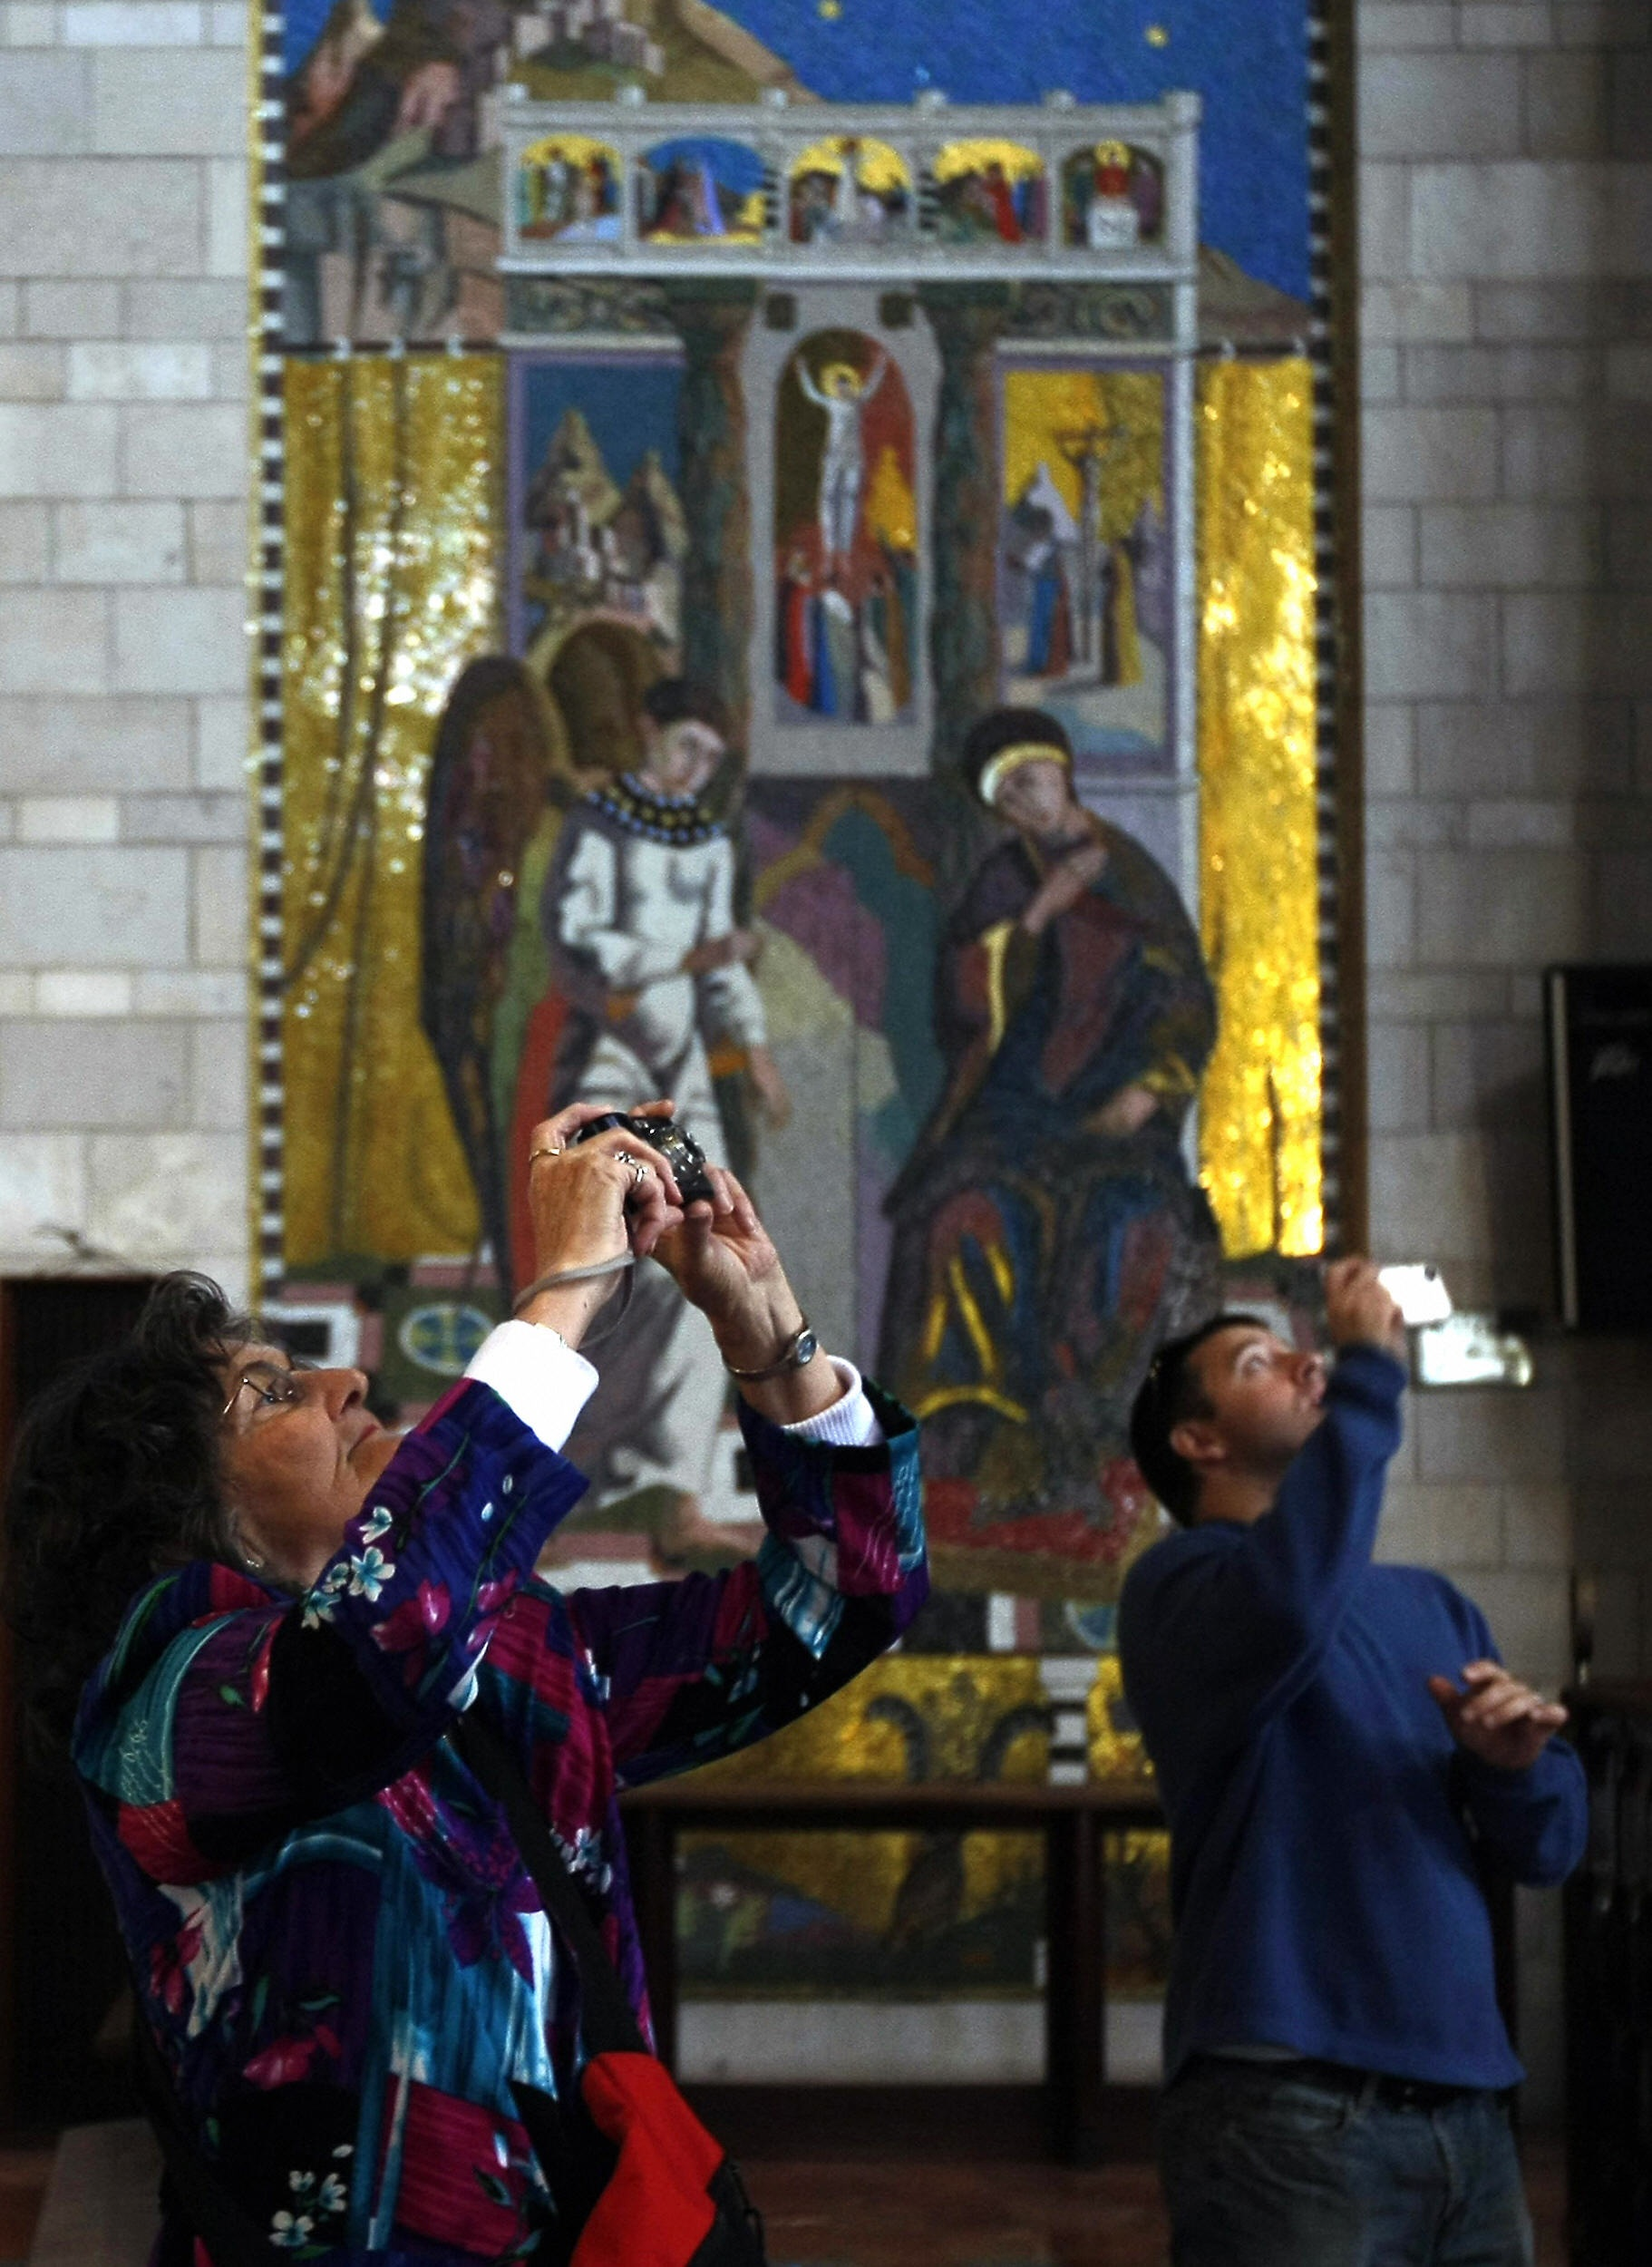 MENAHEM KAHANA/AFP/Getty Images. Christian pilgrims take pictures at the Church of the Annunciation.